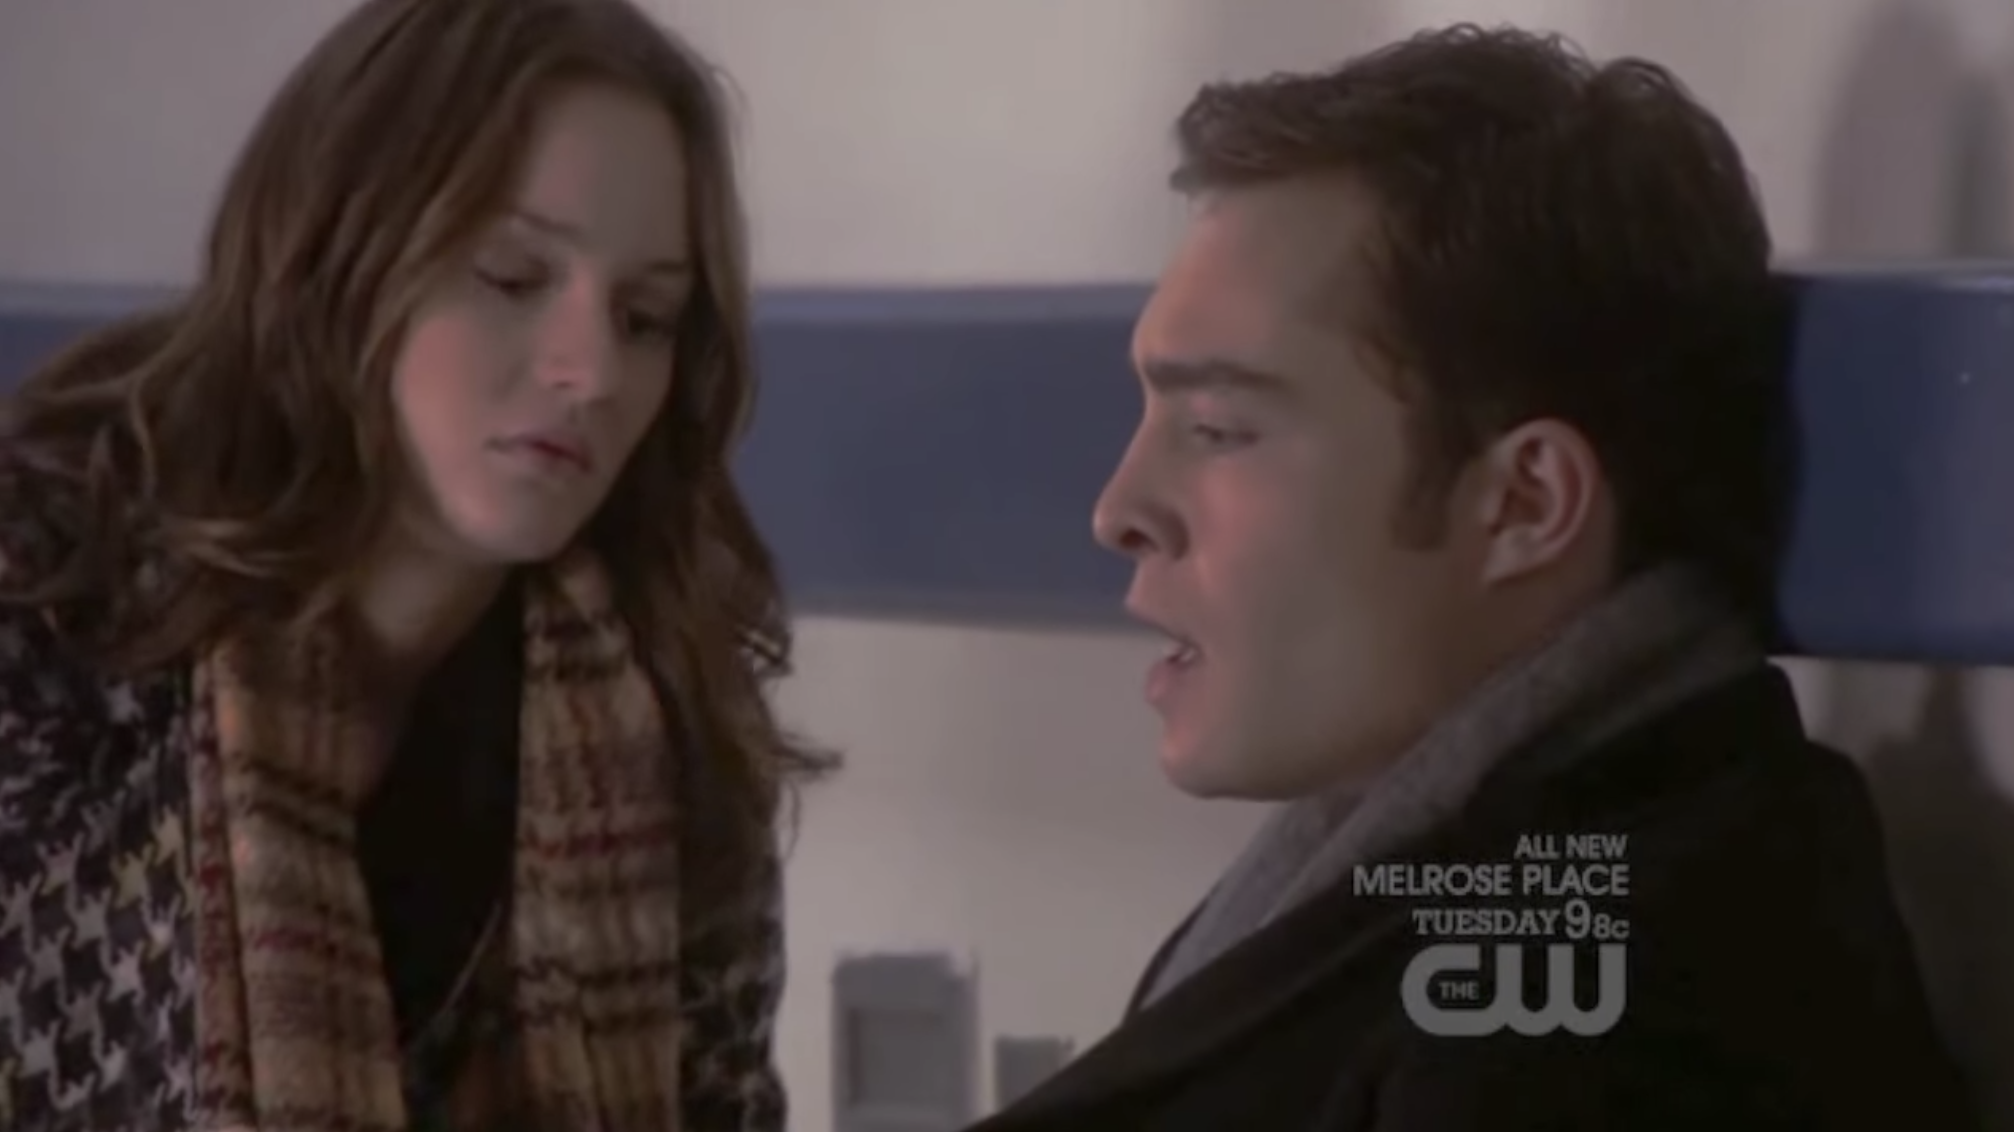 Blair comforting Chuck in the hospital.